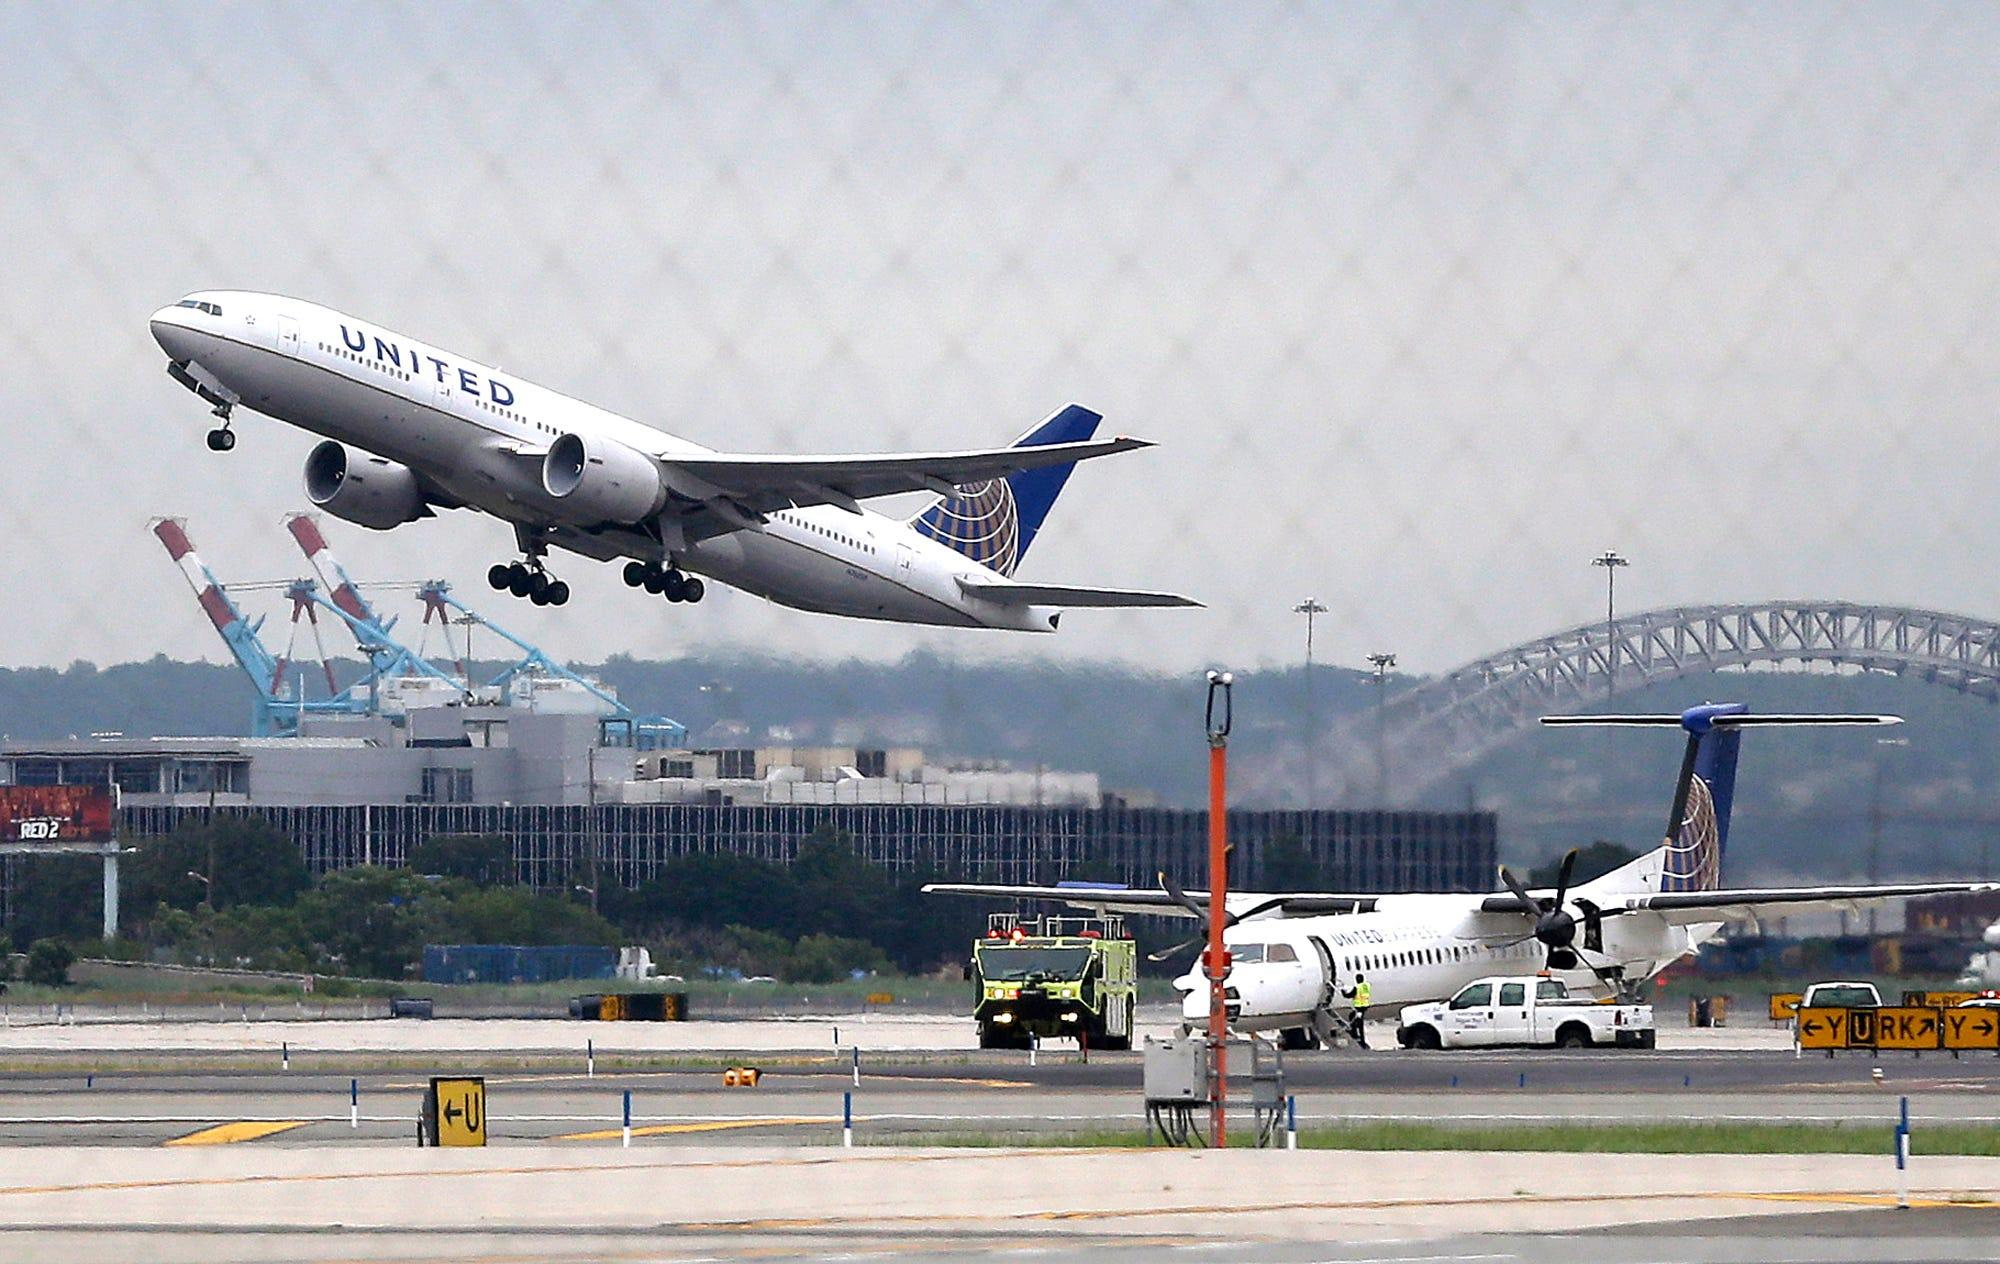 United Airlines reports $1.8 billion quarterly loss, but pins hopes on recovery in 2022